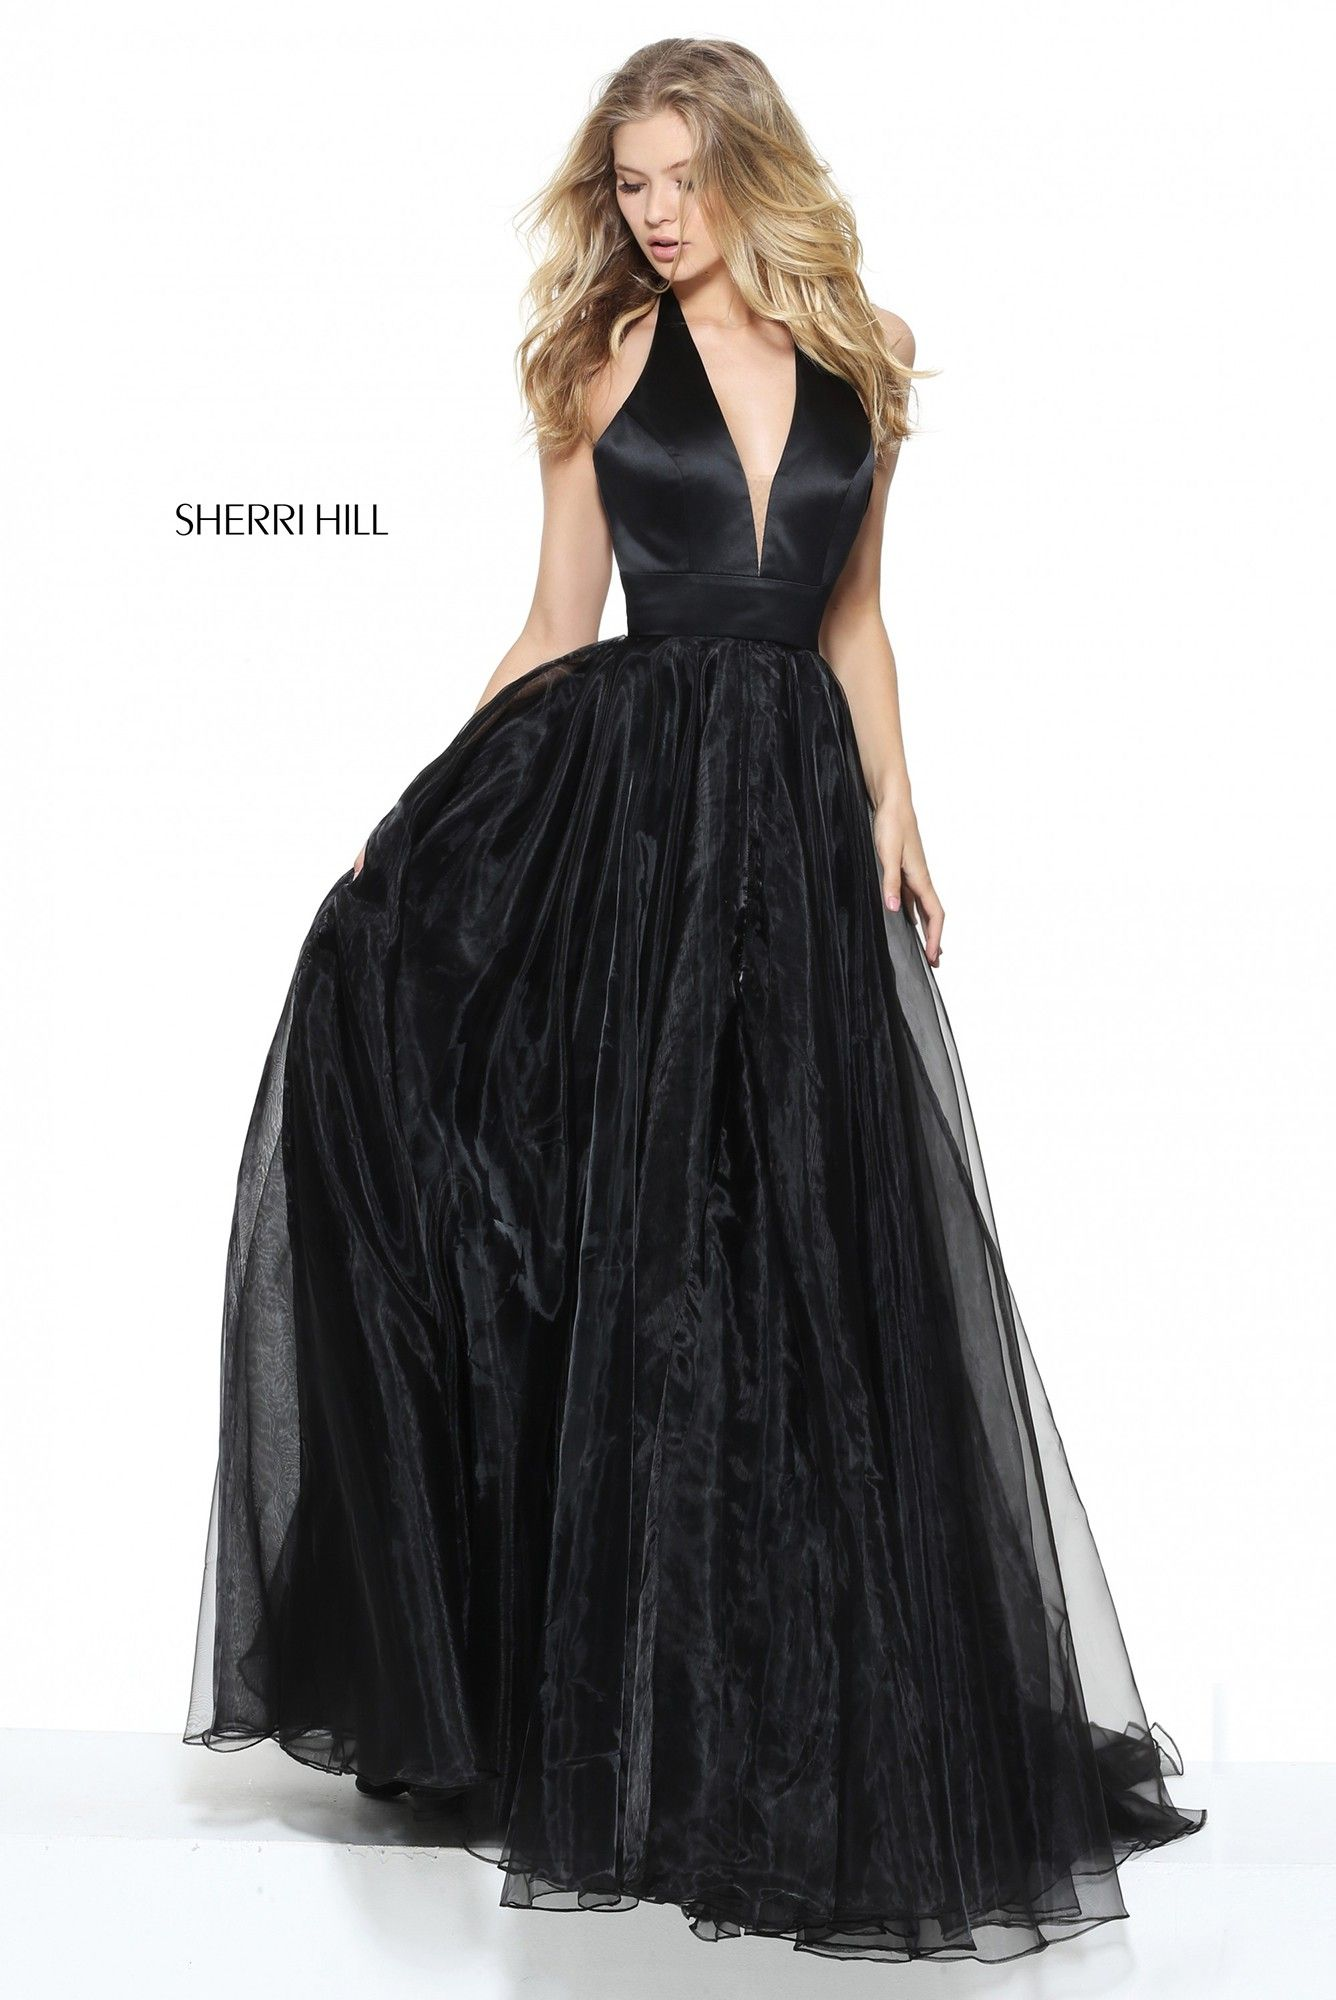 9a4305caf03a2 Go with the flow in Sherri Hill 50834. The satin bodice has an illusion  plunge halter neckline with sheer panel and defined waistband.